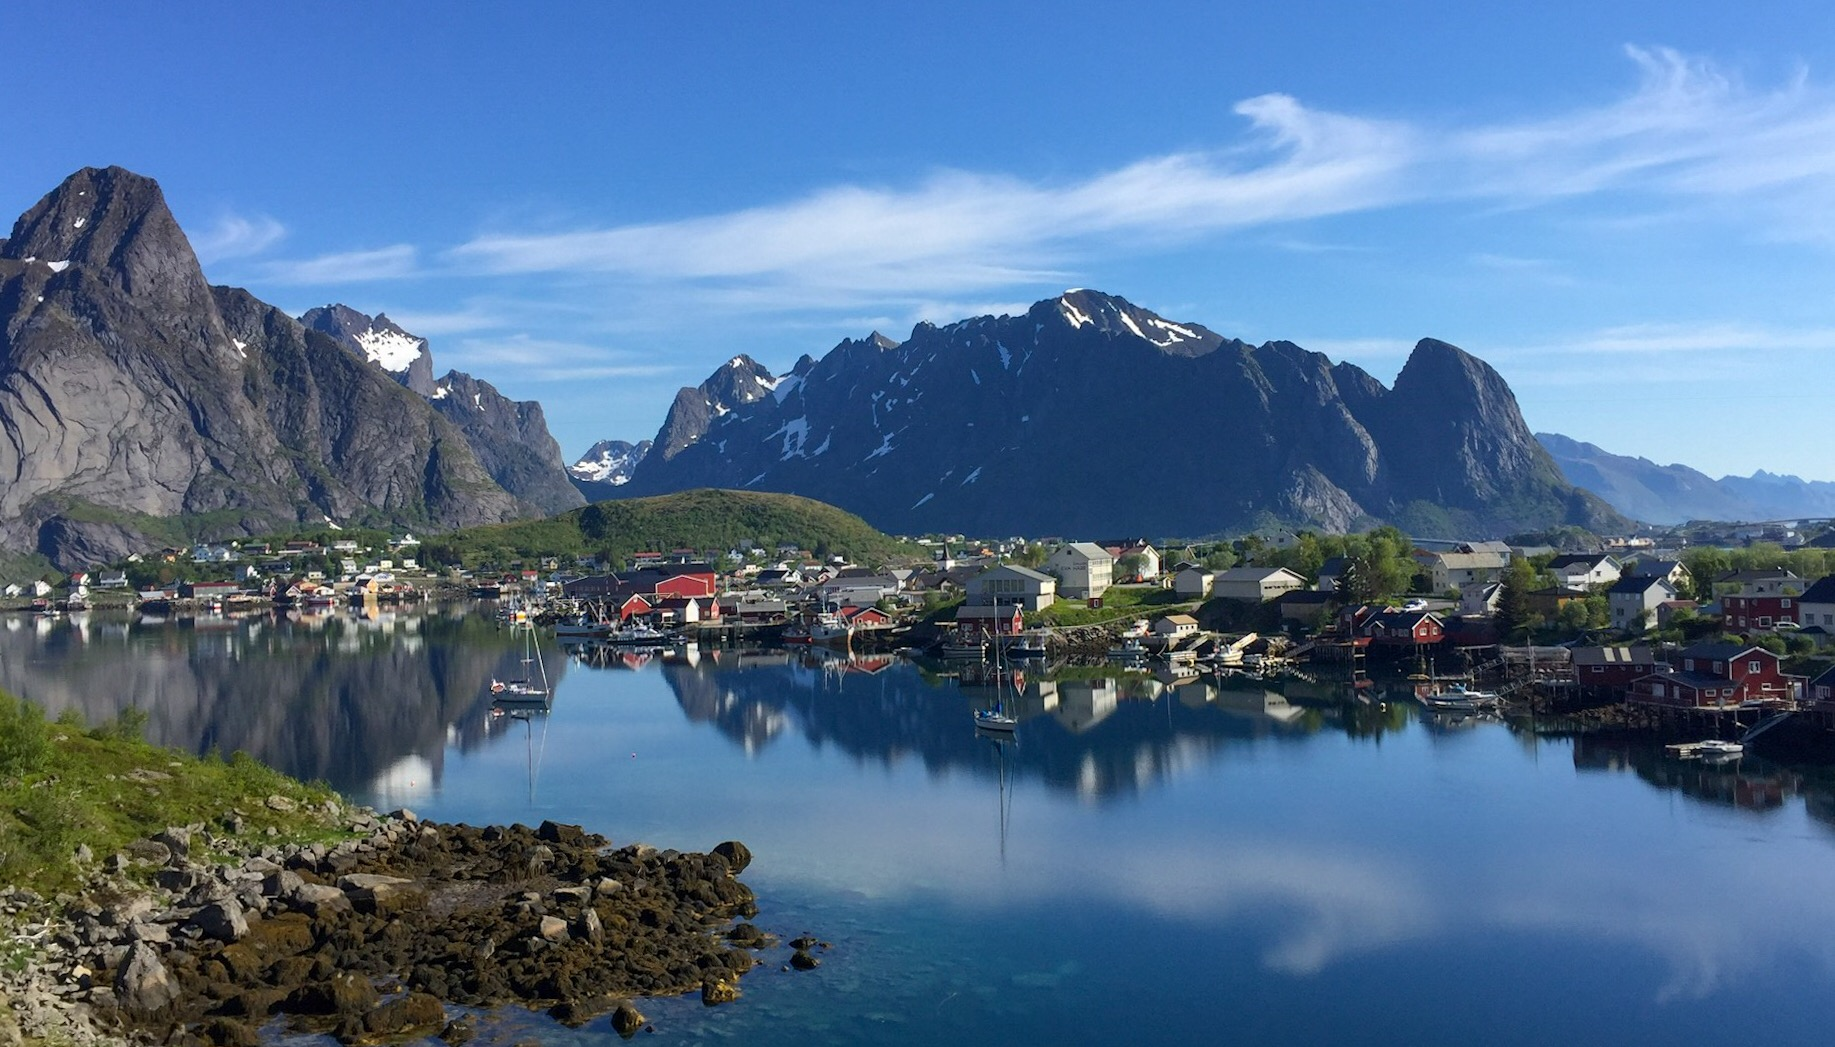 Temptress at Reine in Norway